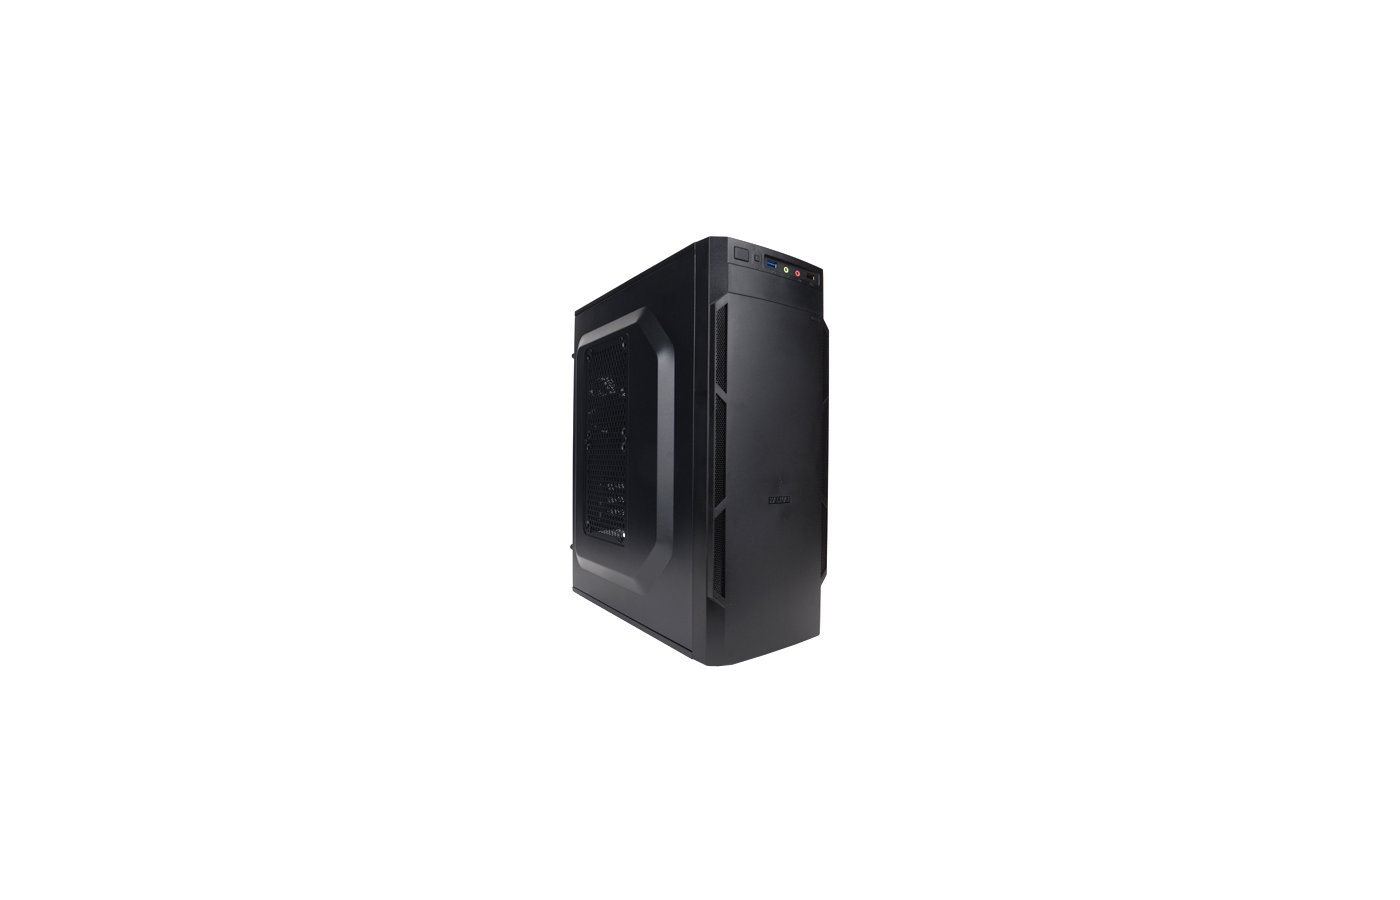 Корпус Zalman ZM-T1 черный w/o PSU mATX 1x80mm 3x120mm 1xUSB2.0 1xUSB3.0 audio bott PSU